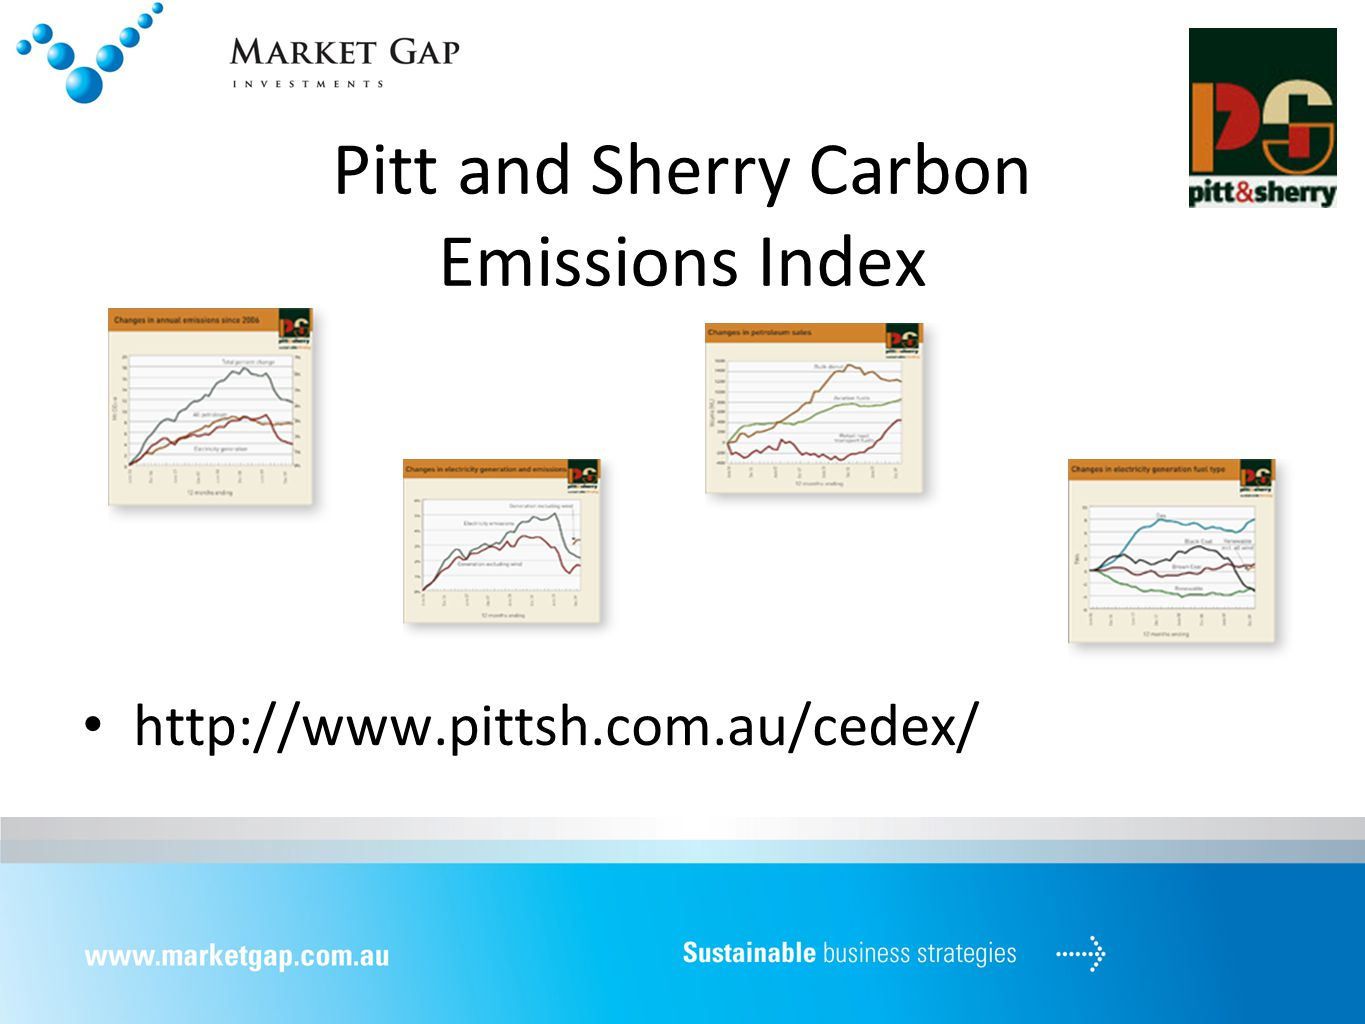 Pitt and Sherry Carbon Emissions Index http://www.pittsh.com.au/cedex/